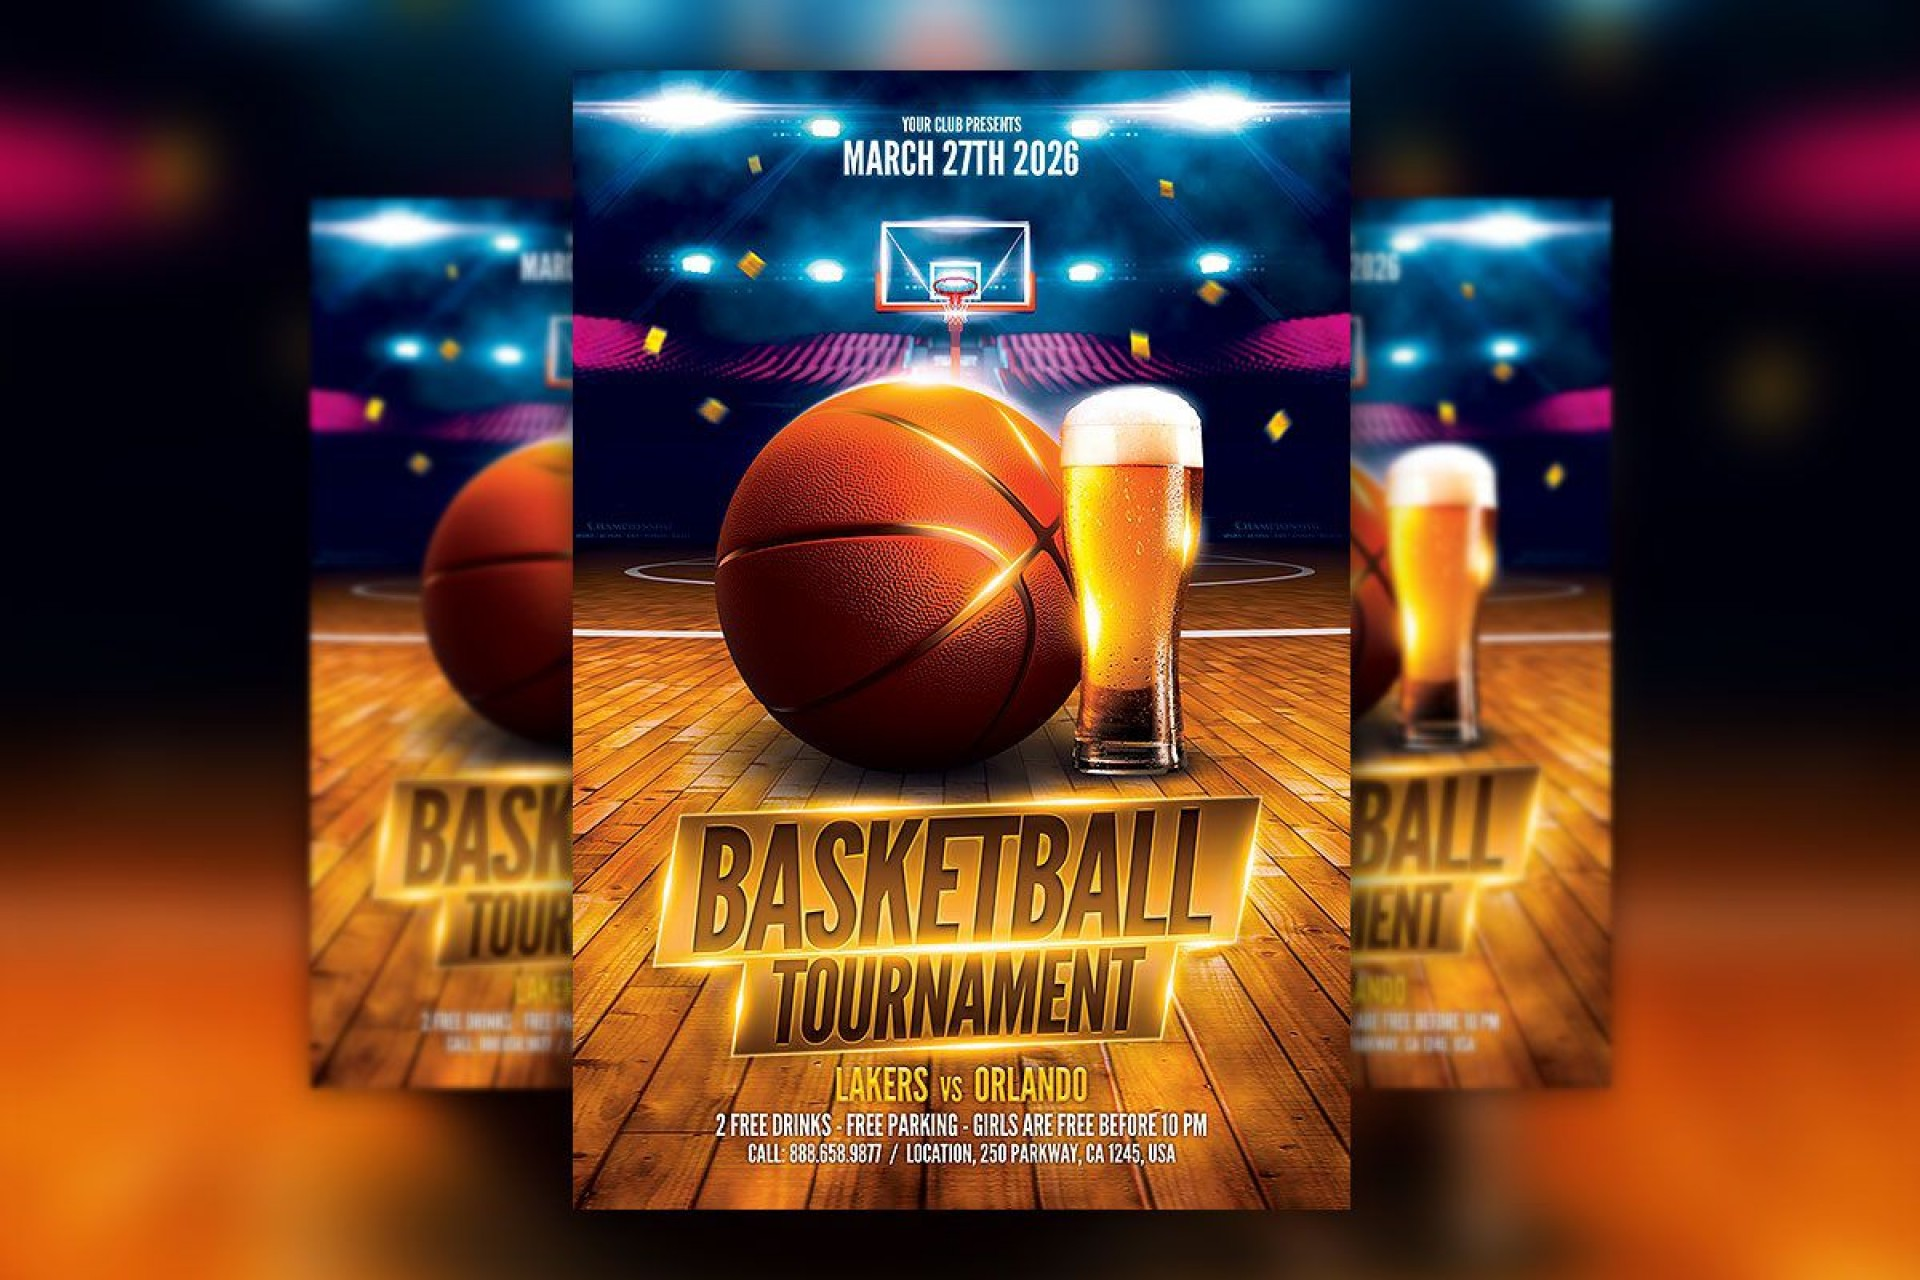 004 Awesome Free Basketball Flyer Template Idea  Game 3 On Tournament Word1920